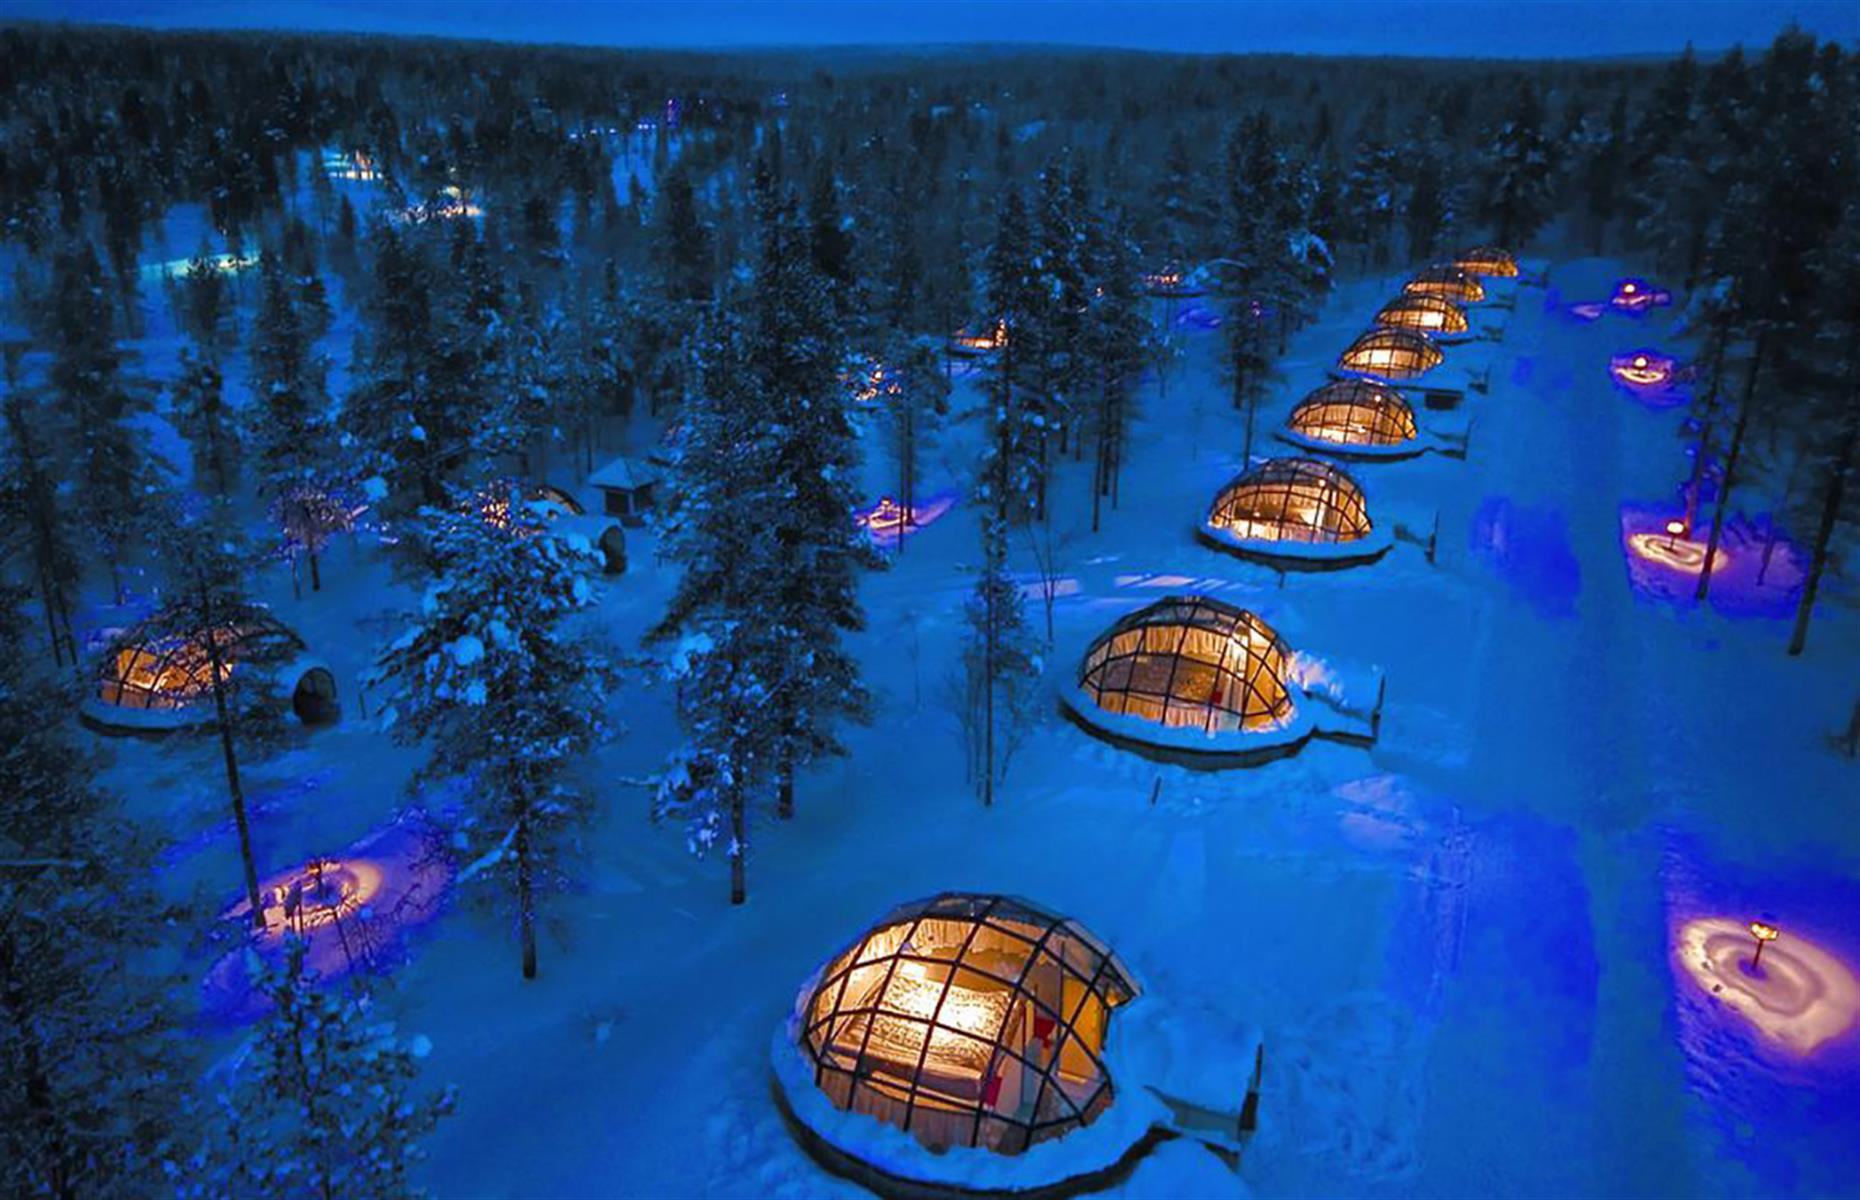 Slide 19 of 32: To live the ultimate Northern Lights dream, book a stay at the Kakslauttanen Arctic Resort in Lapland, Finland. Hidden deep in a forest, the glass igloos and traditional wooden chalets offer excellentviews, perfect for observing the light show in the sky. Some igloos even have a private sauna in the bathroom for you to make the most of your remote Arctic adventure.